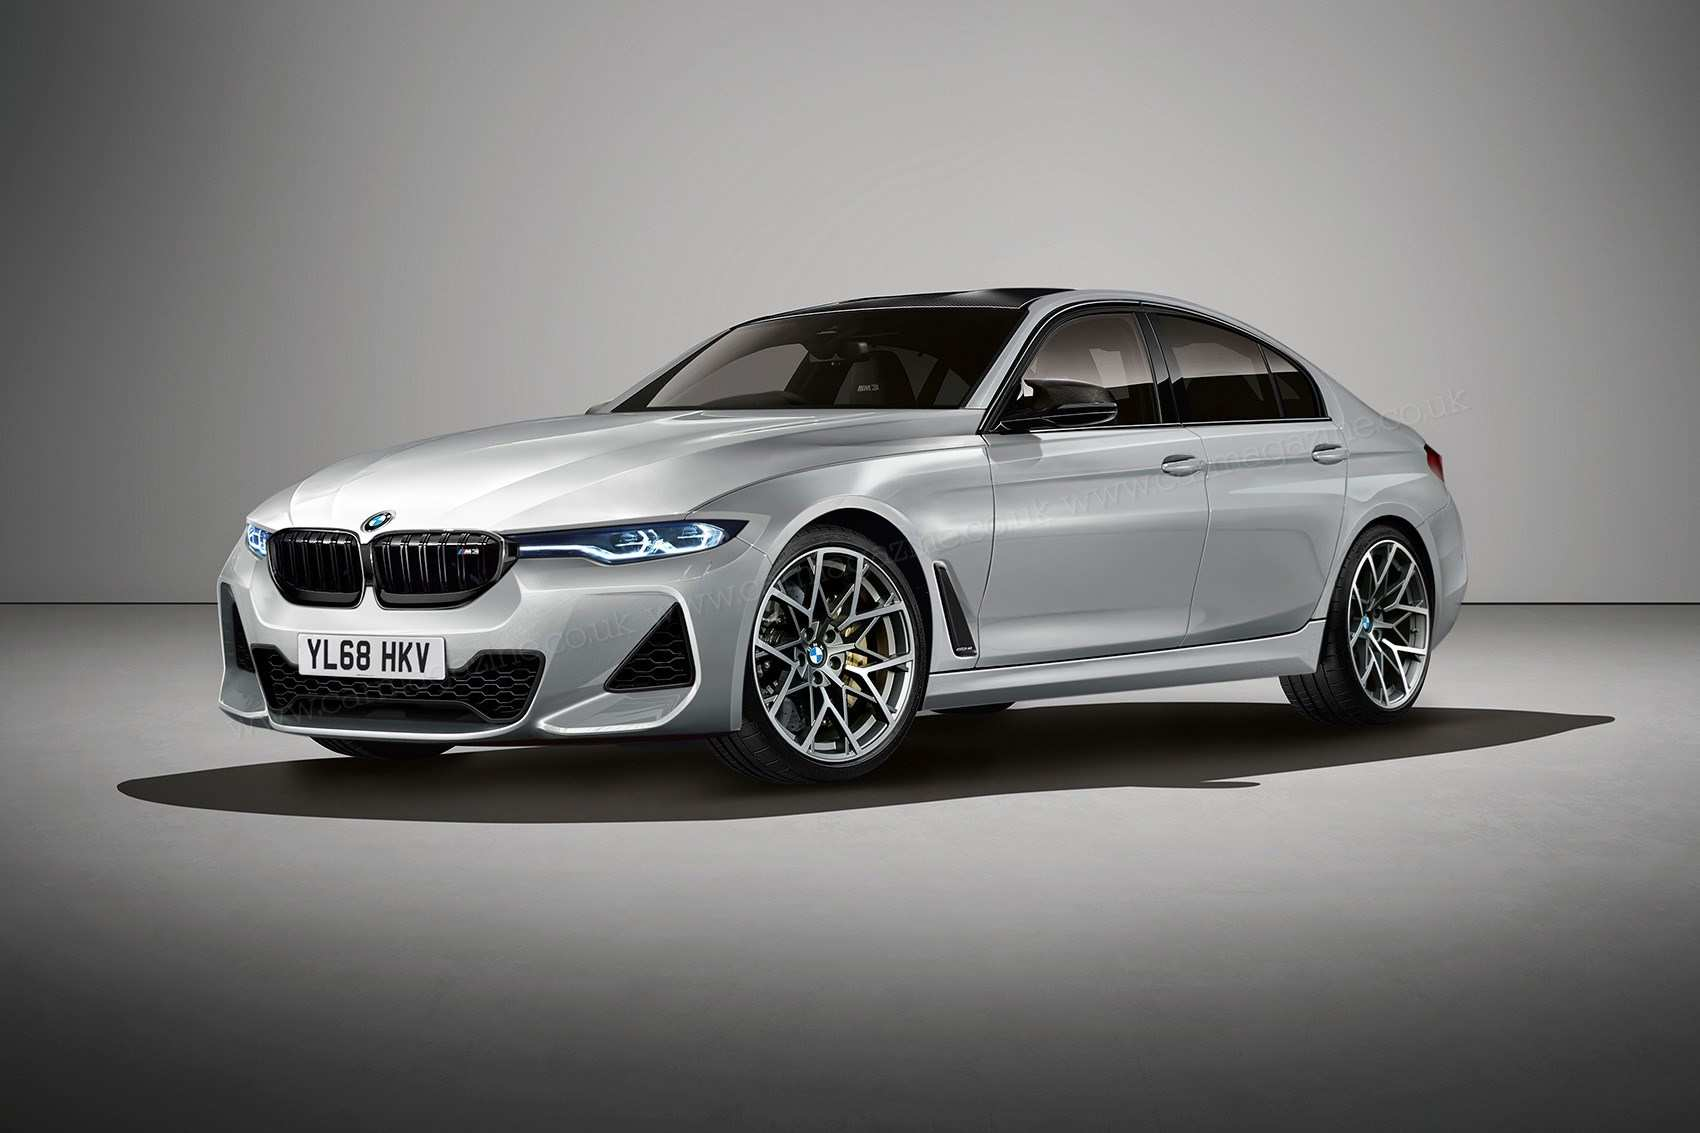 46 Gallery of When Does The 2020 Bmw M3 Come Out Pictures with When Does The 2020 Bmw M3 Come Out